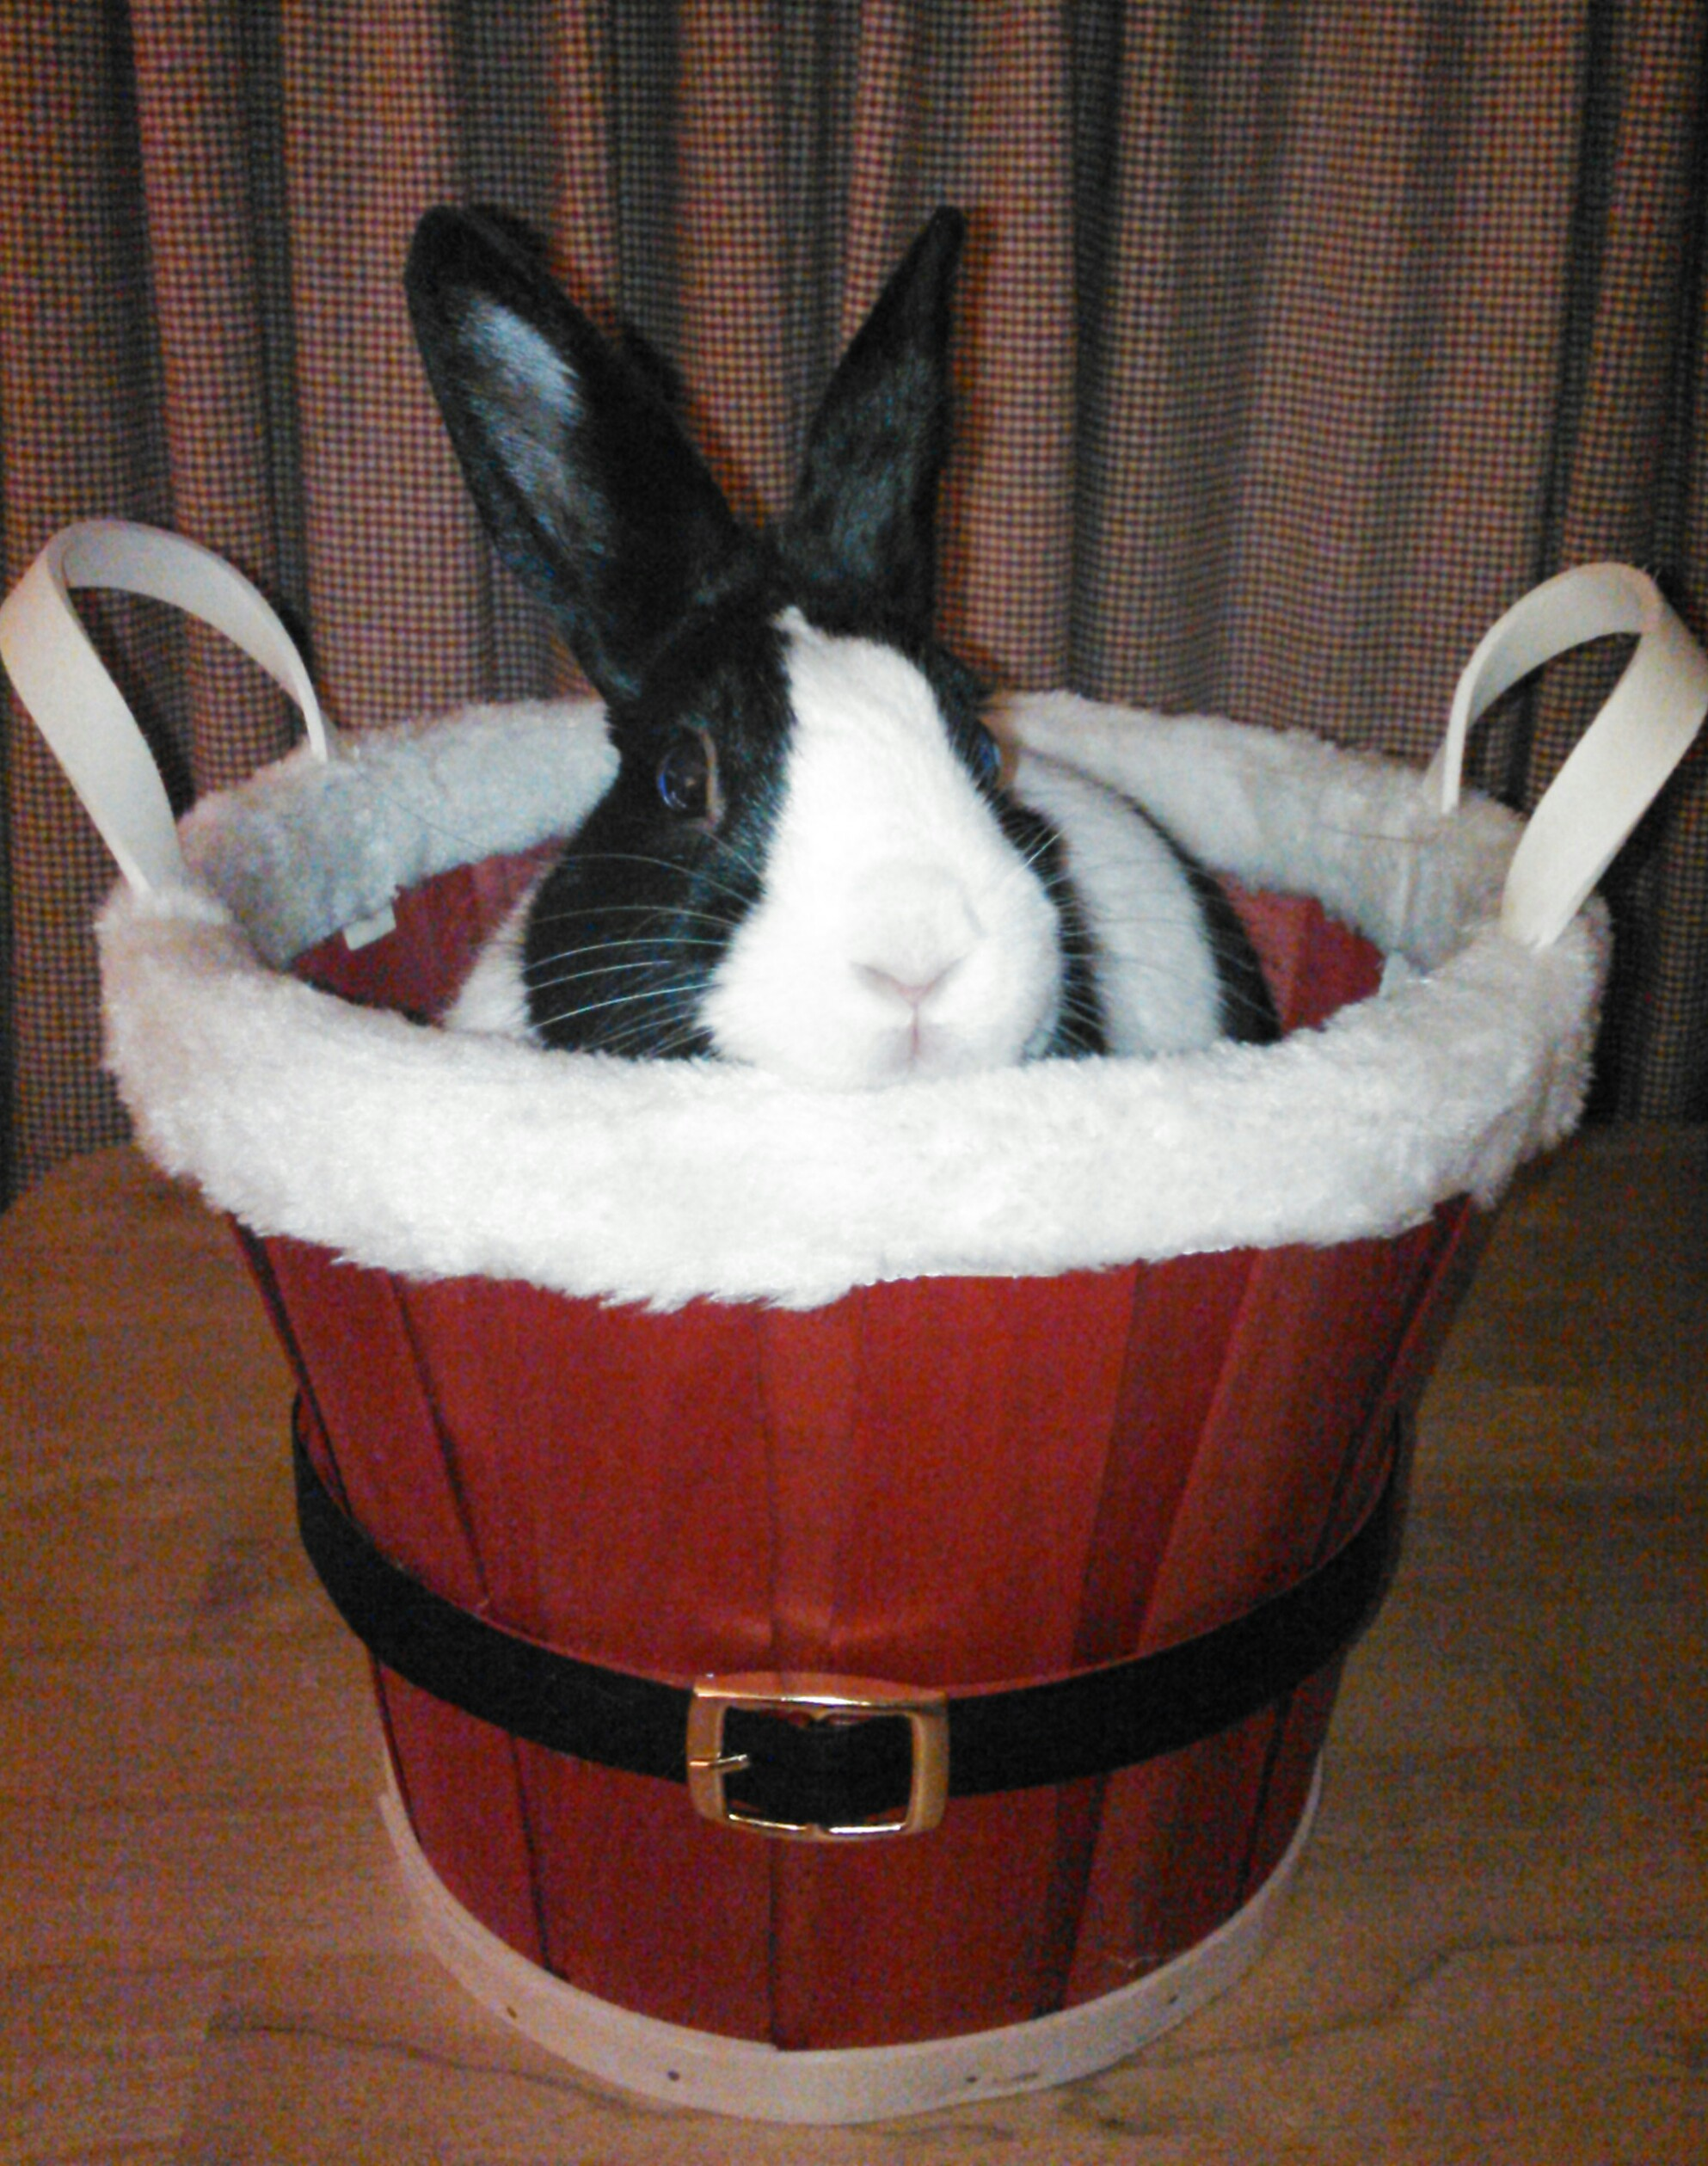 Bunny Says This Basket Is Perfect for Holiday Treats - Fill It Up!